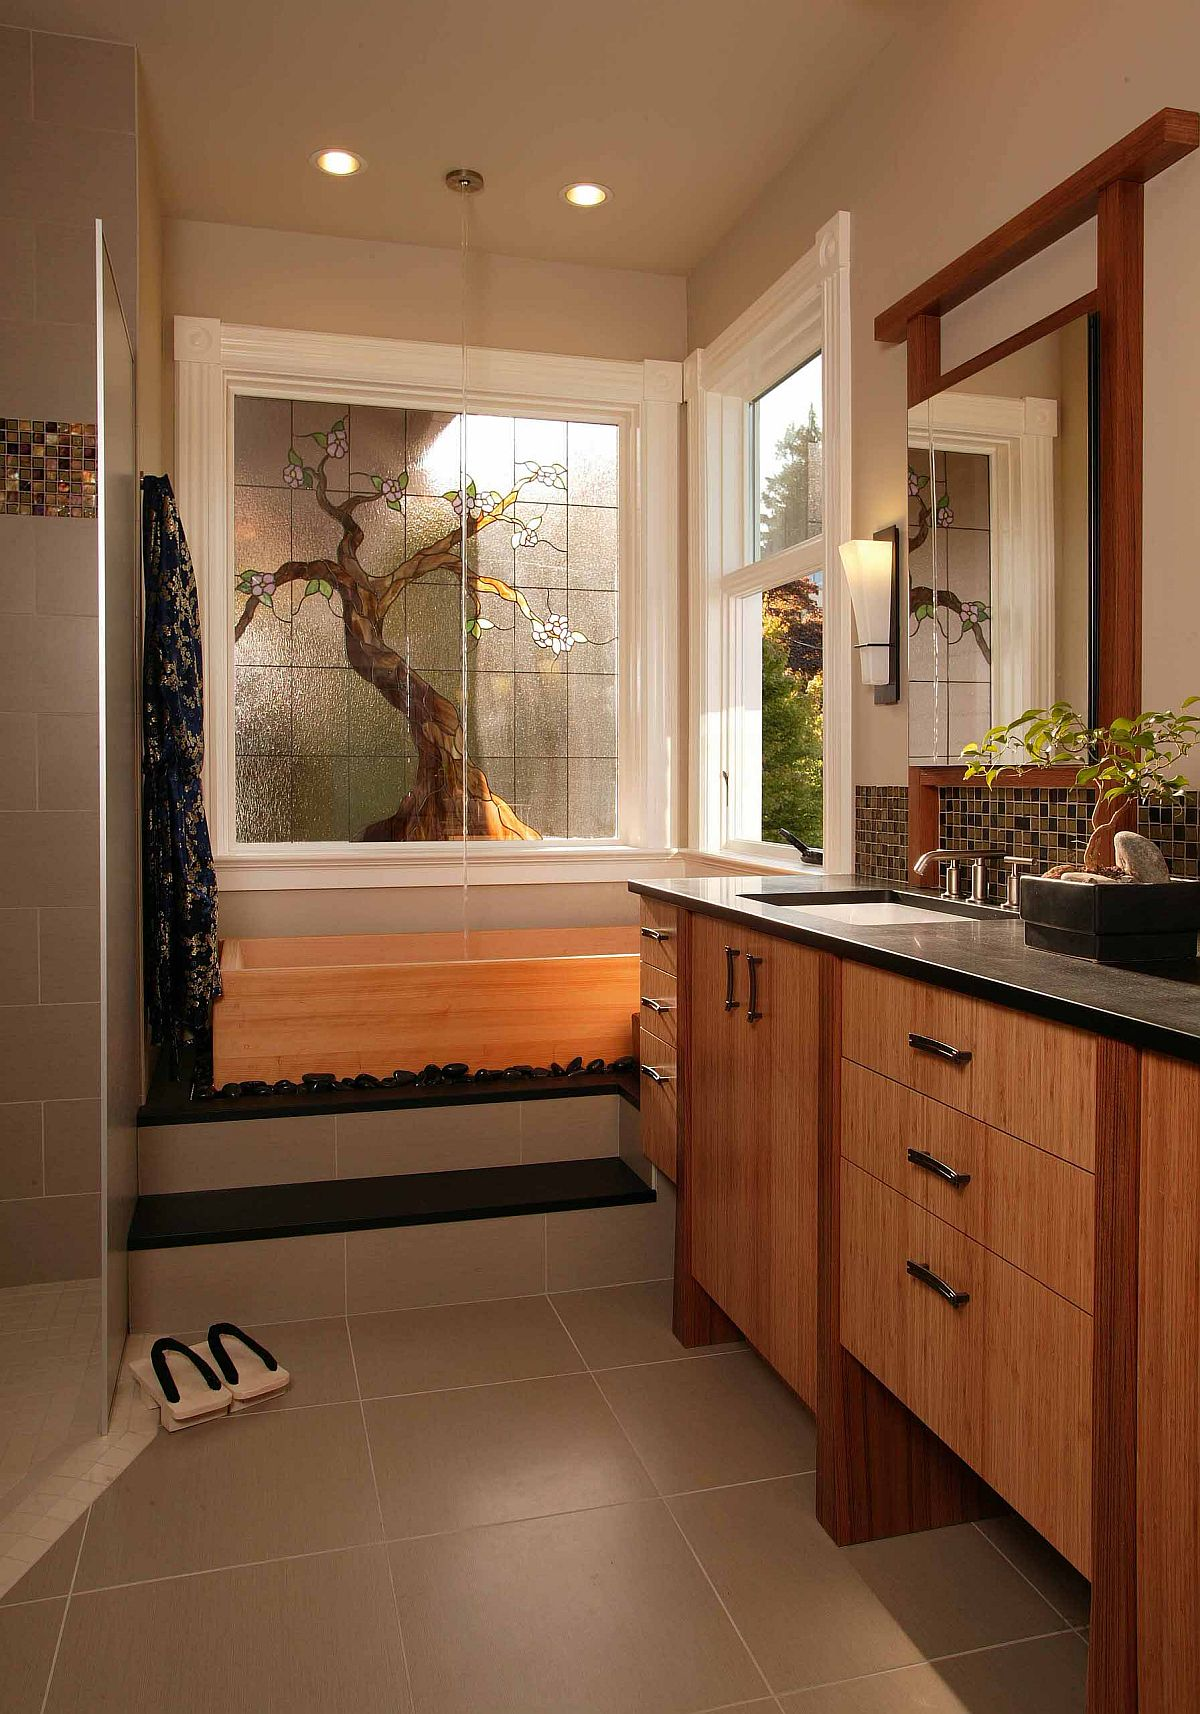 Beautiful-tree-in-stained-glass-adds-visual-brilliance-to-this-modern-Asian-style-bathroom-39840